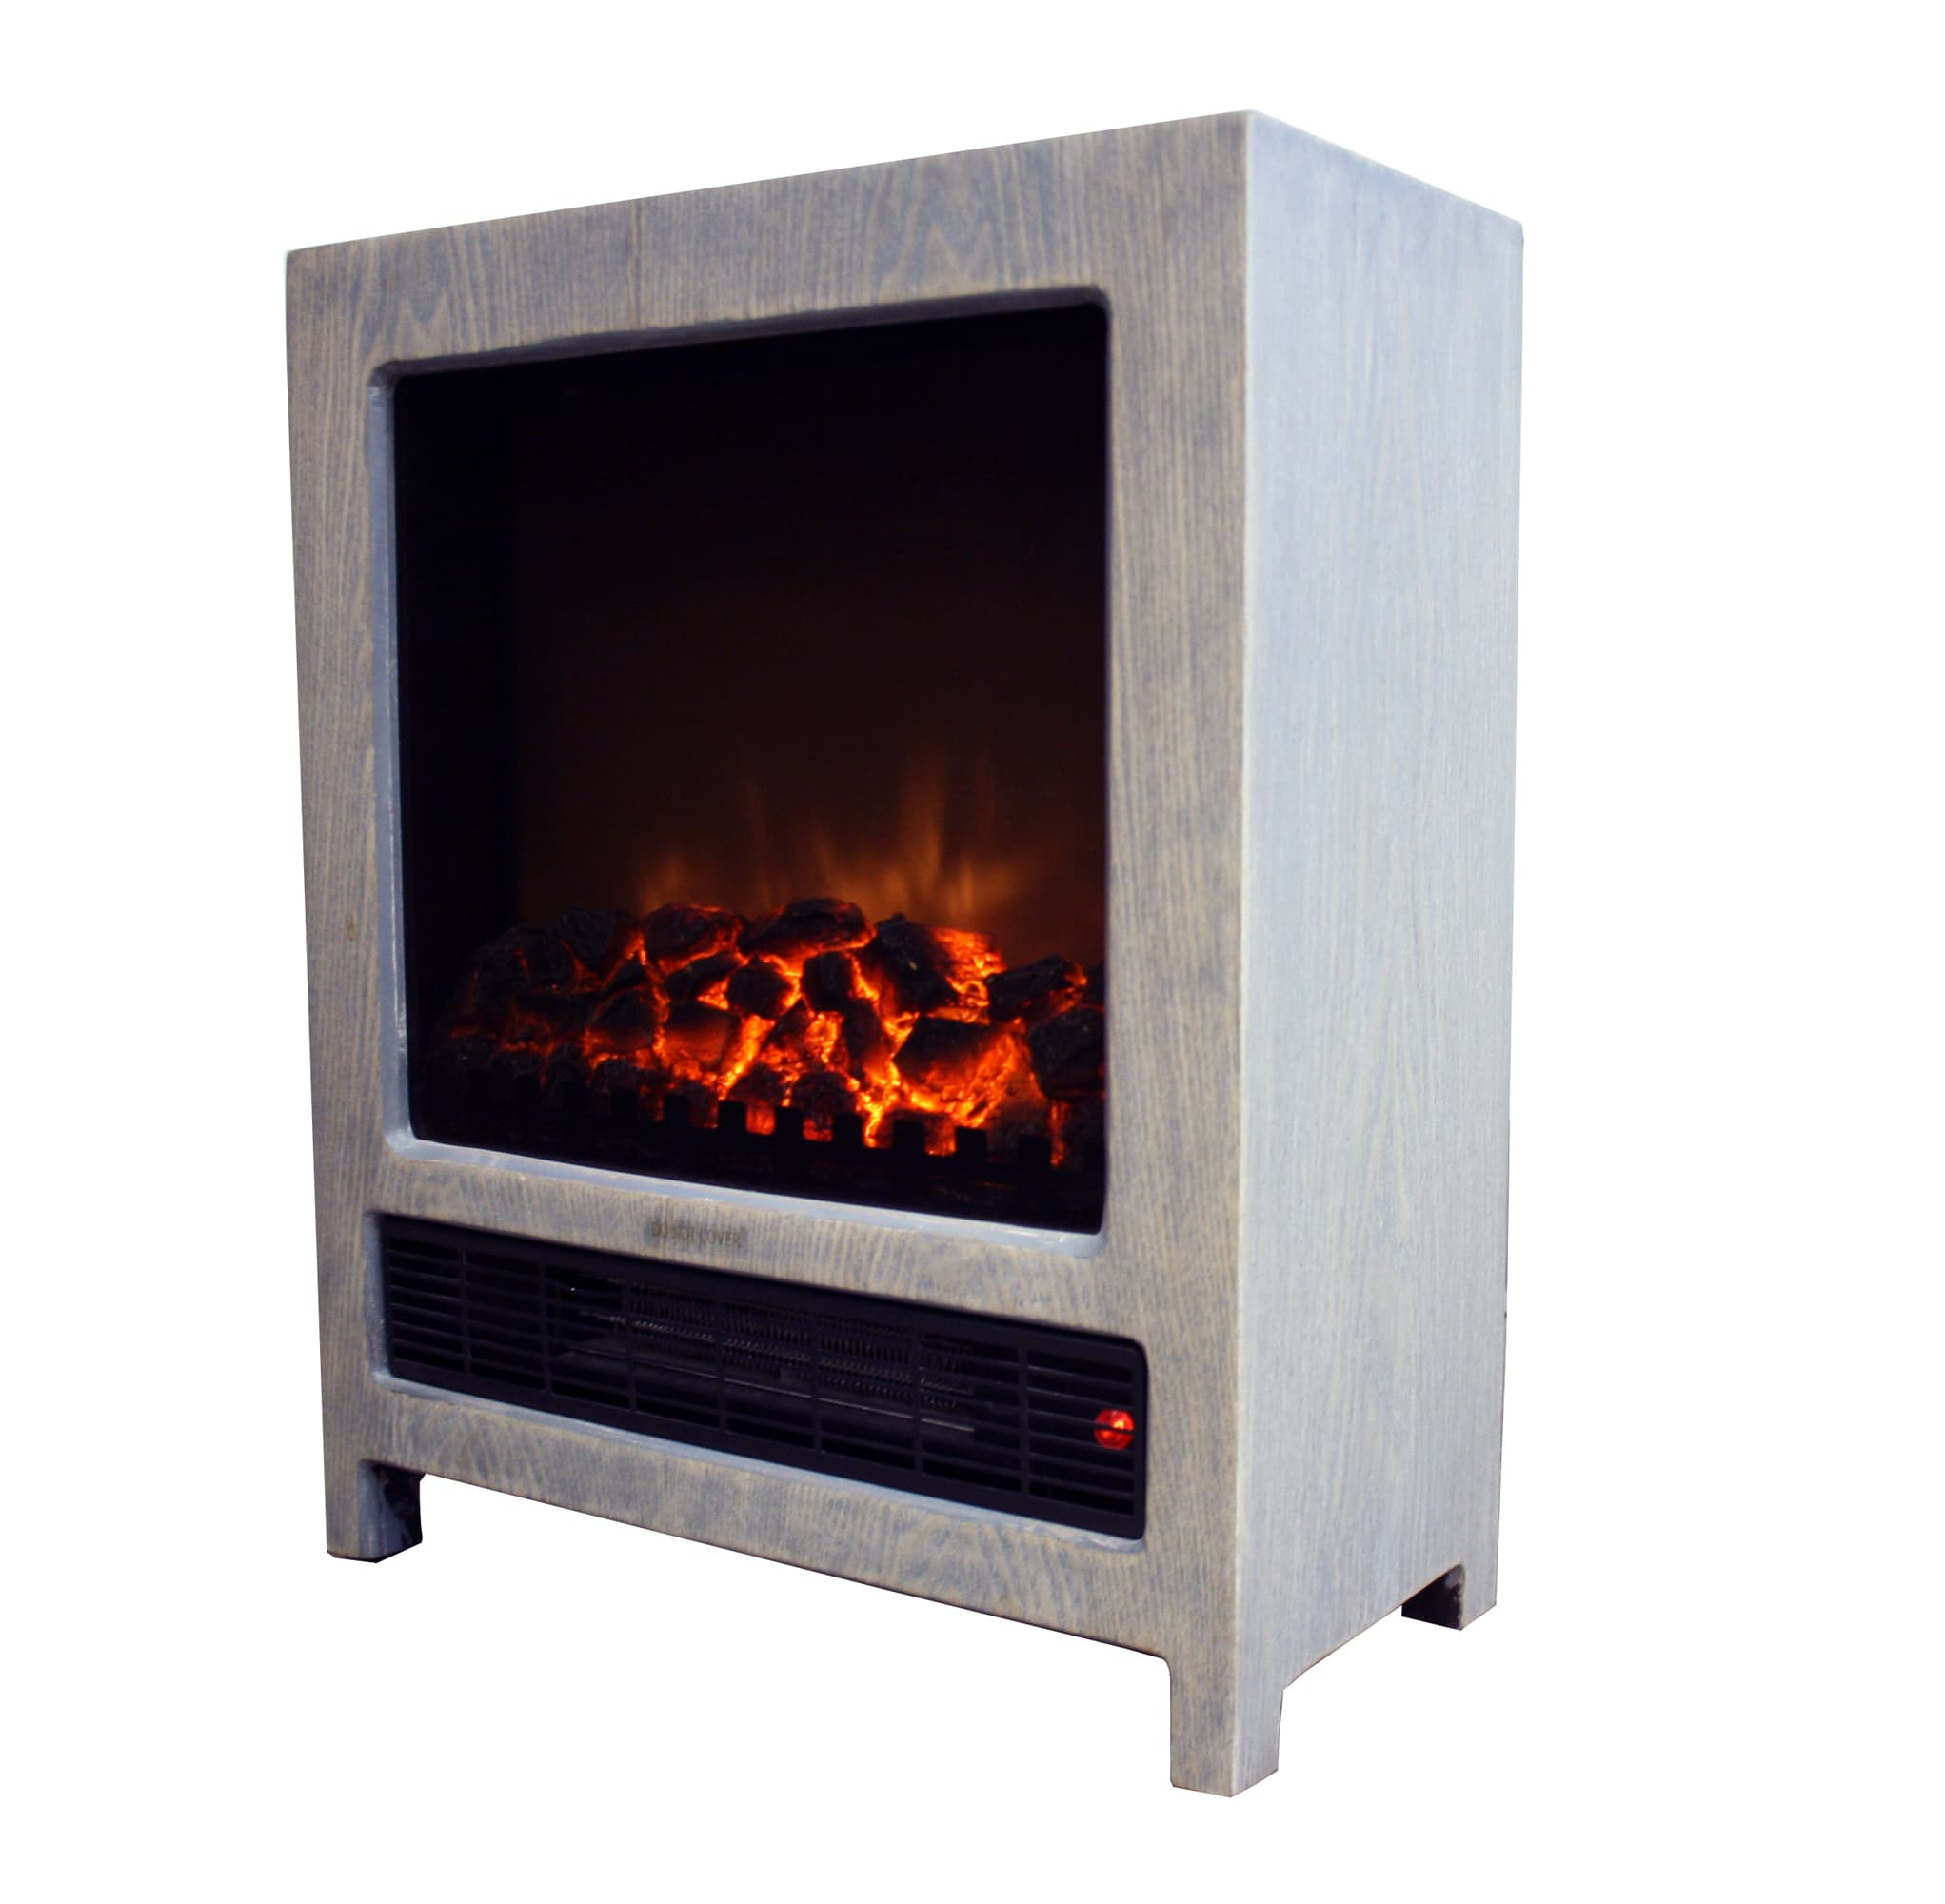 Space Heaters Fireplace Aura Decorative Stove Now With Led